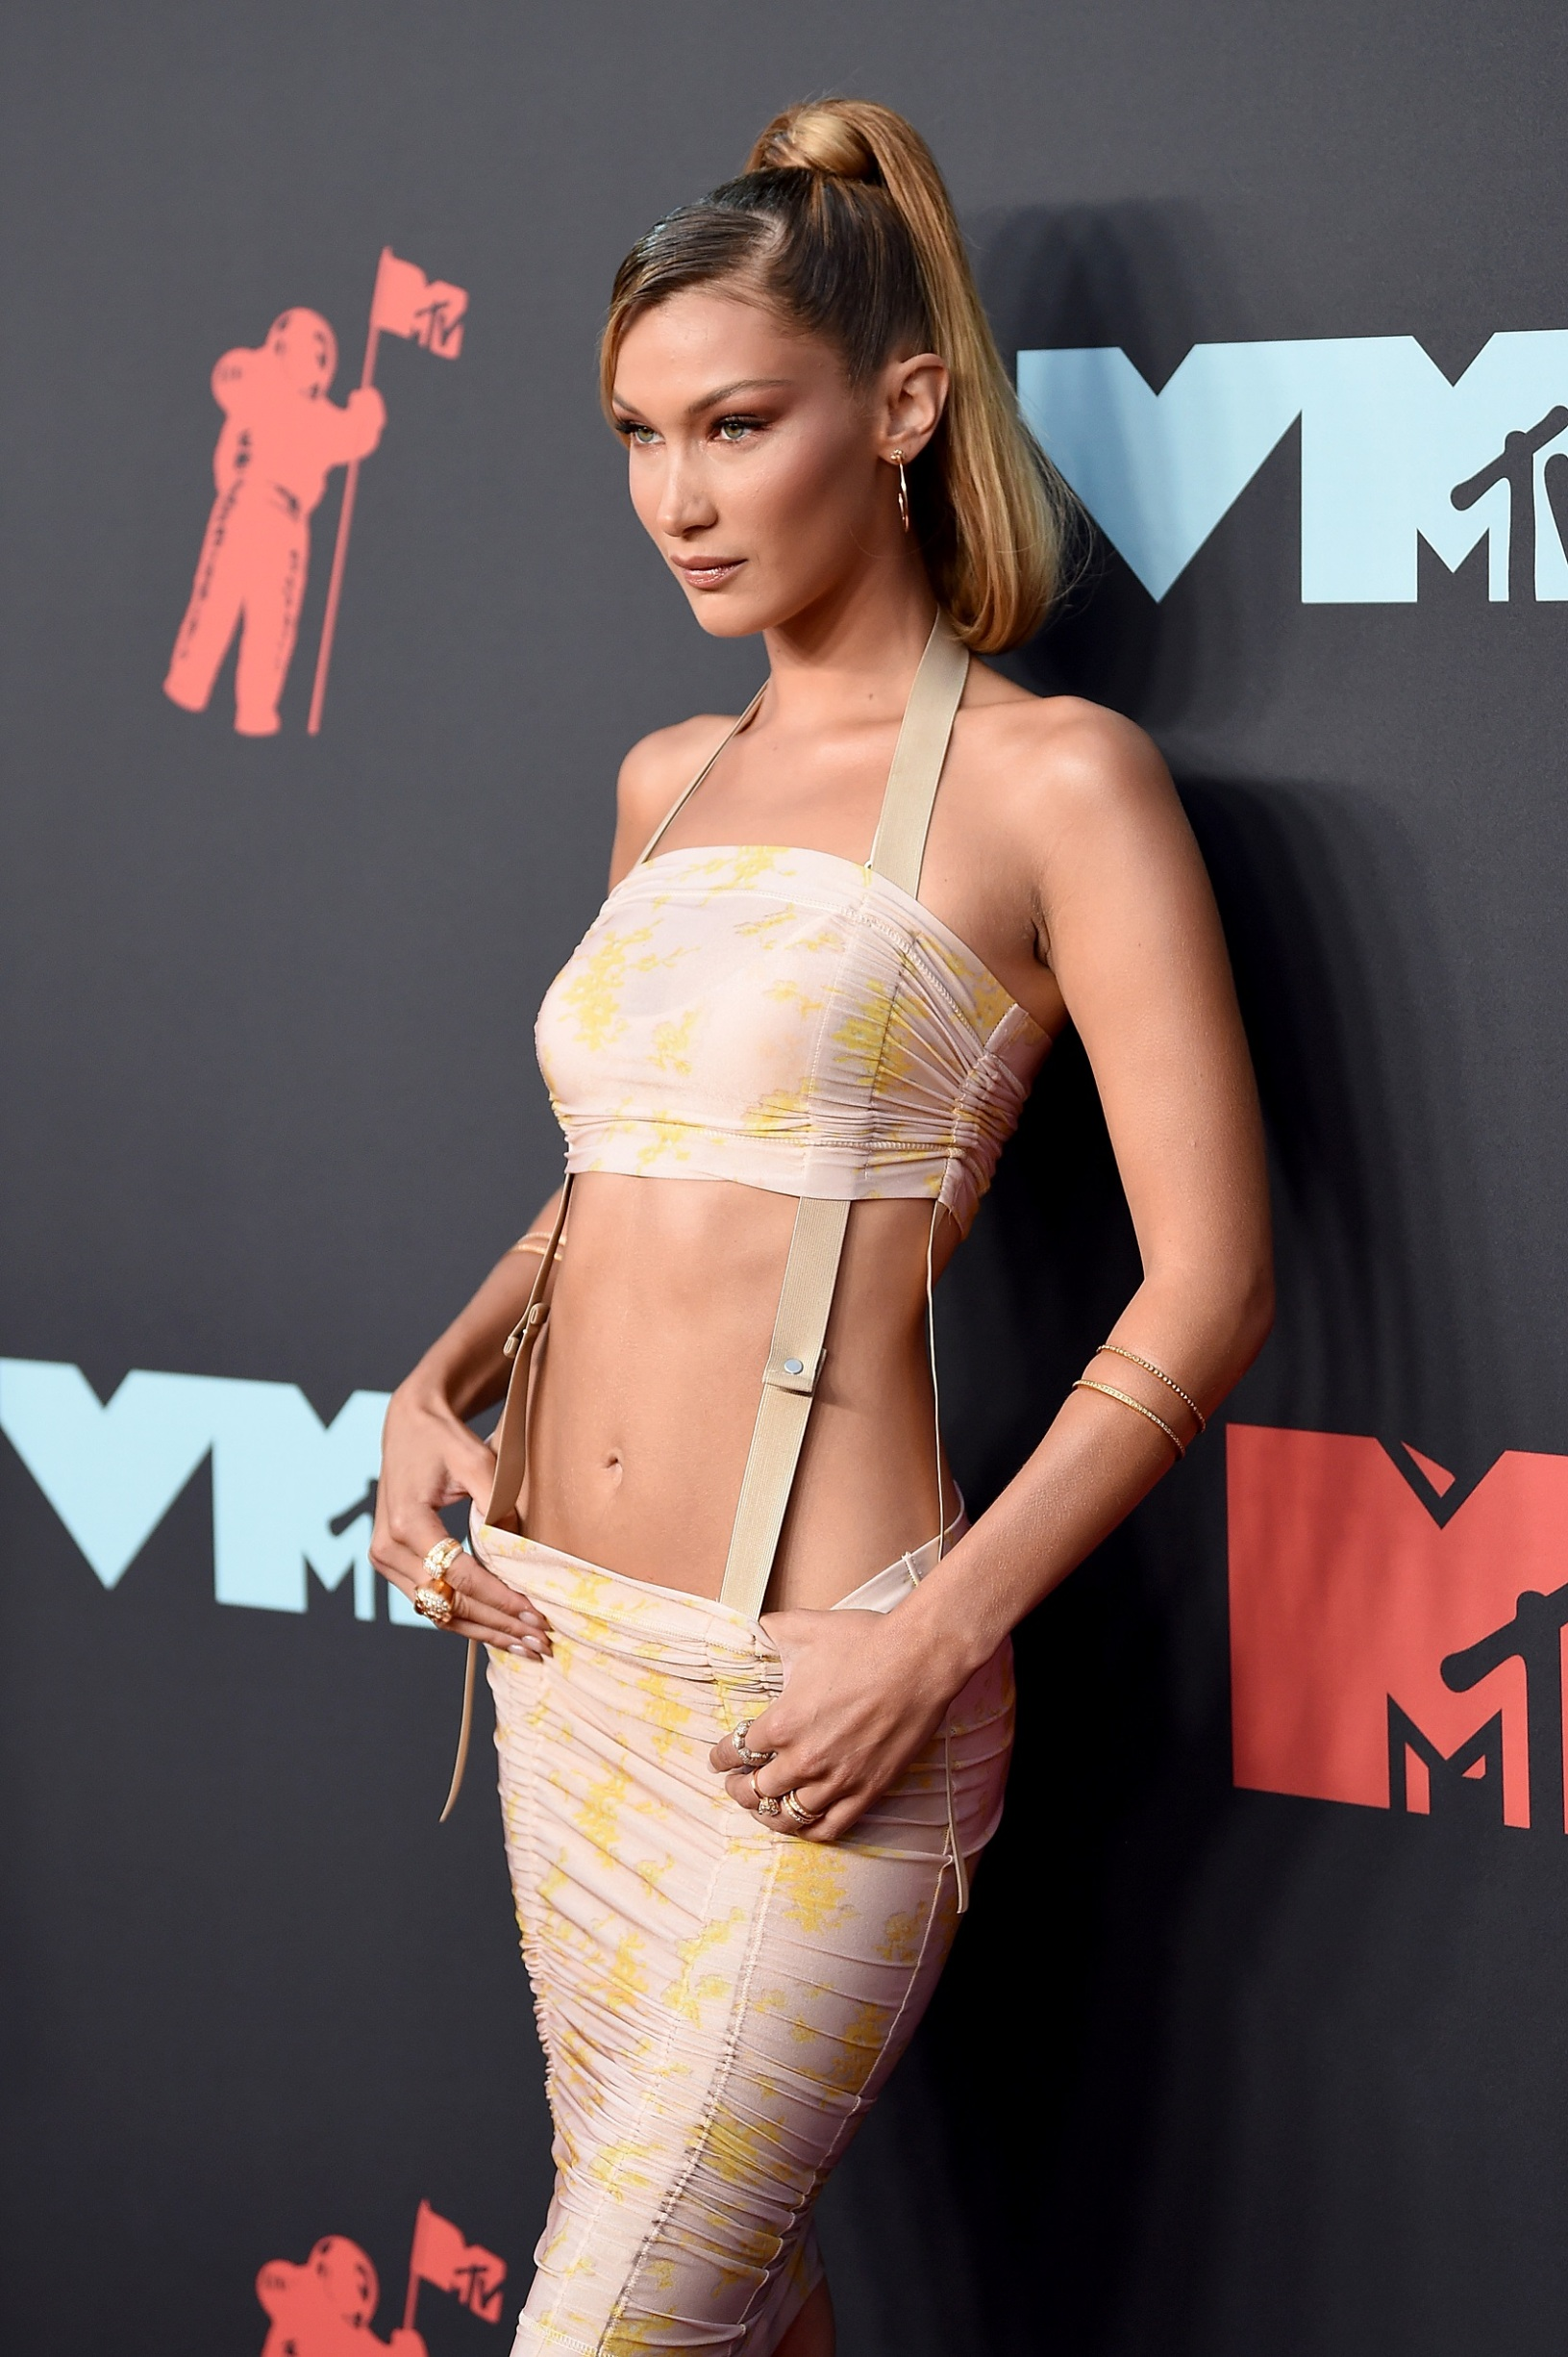 NEWARK, NEW JERSEY - AUGUST 26: Bella Hadid attends the 2019 MTV Video Music Awards at Prudential Center on August 26, 2019 in Newark, New Jersey. (Photo by Dimitrios Kambouris/Getty Images)